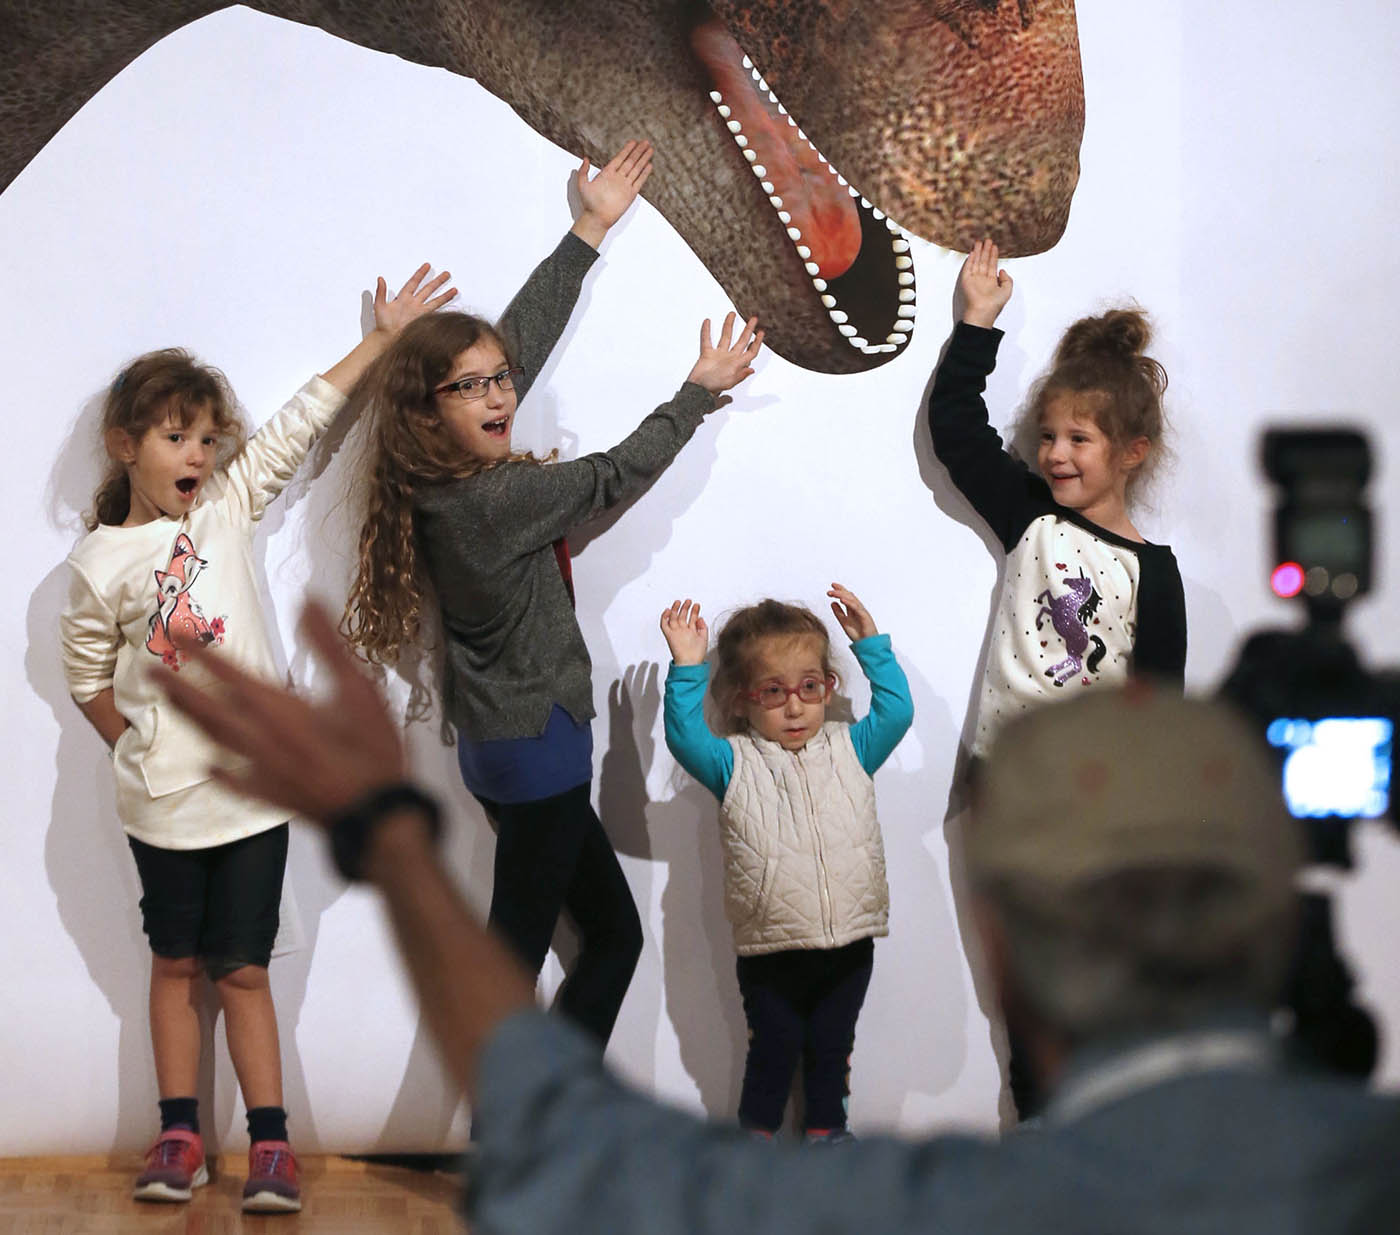 "The museum's camera club volunteered their services photographing families near a giant dino poster during ""Dino Daze"" at the Buffalo Museum of Science onSaturday, Nov. 12, 2016. The Gabel Family of North Tonawanda from left, Grace, 6, Macy, 8, Piper, 4, and Ashlyn, 6. Photographer's name is Ted Lesinski. (Robert Kirkham/Buffalo News)"